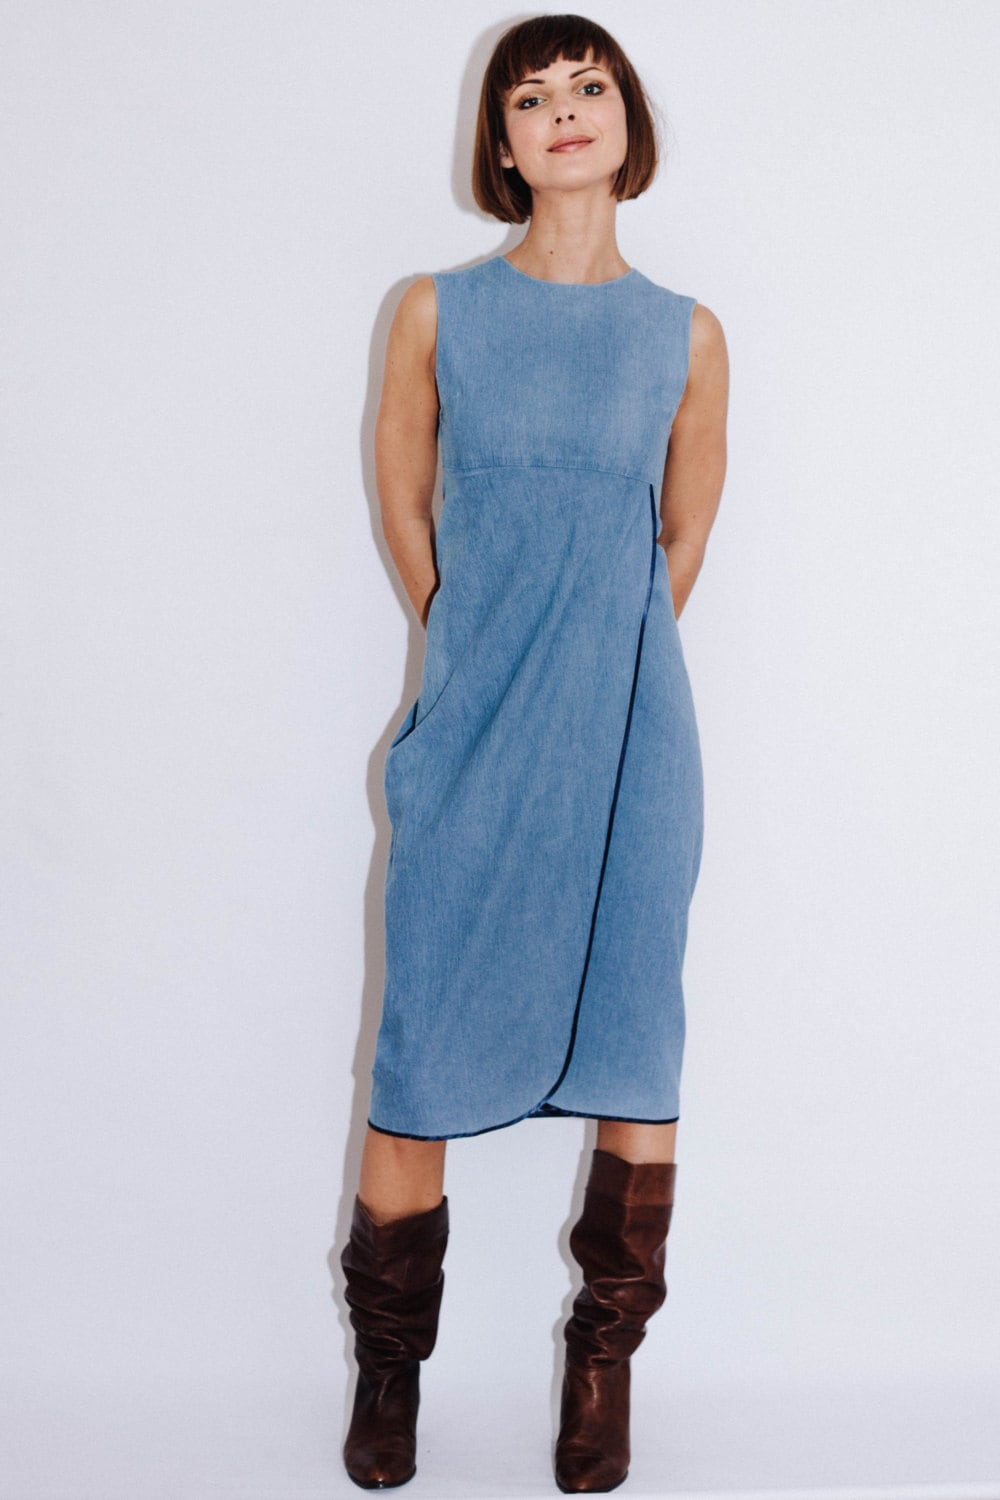 Wrap Dress Denim Dress Casual Dress Unique Dress Midi